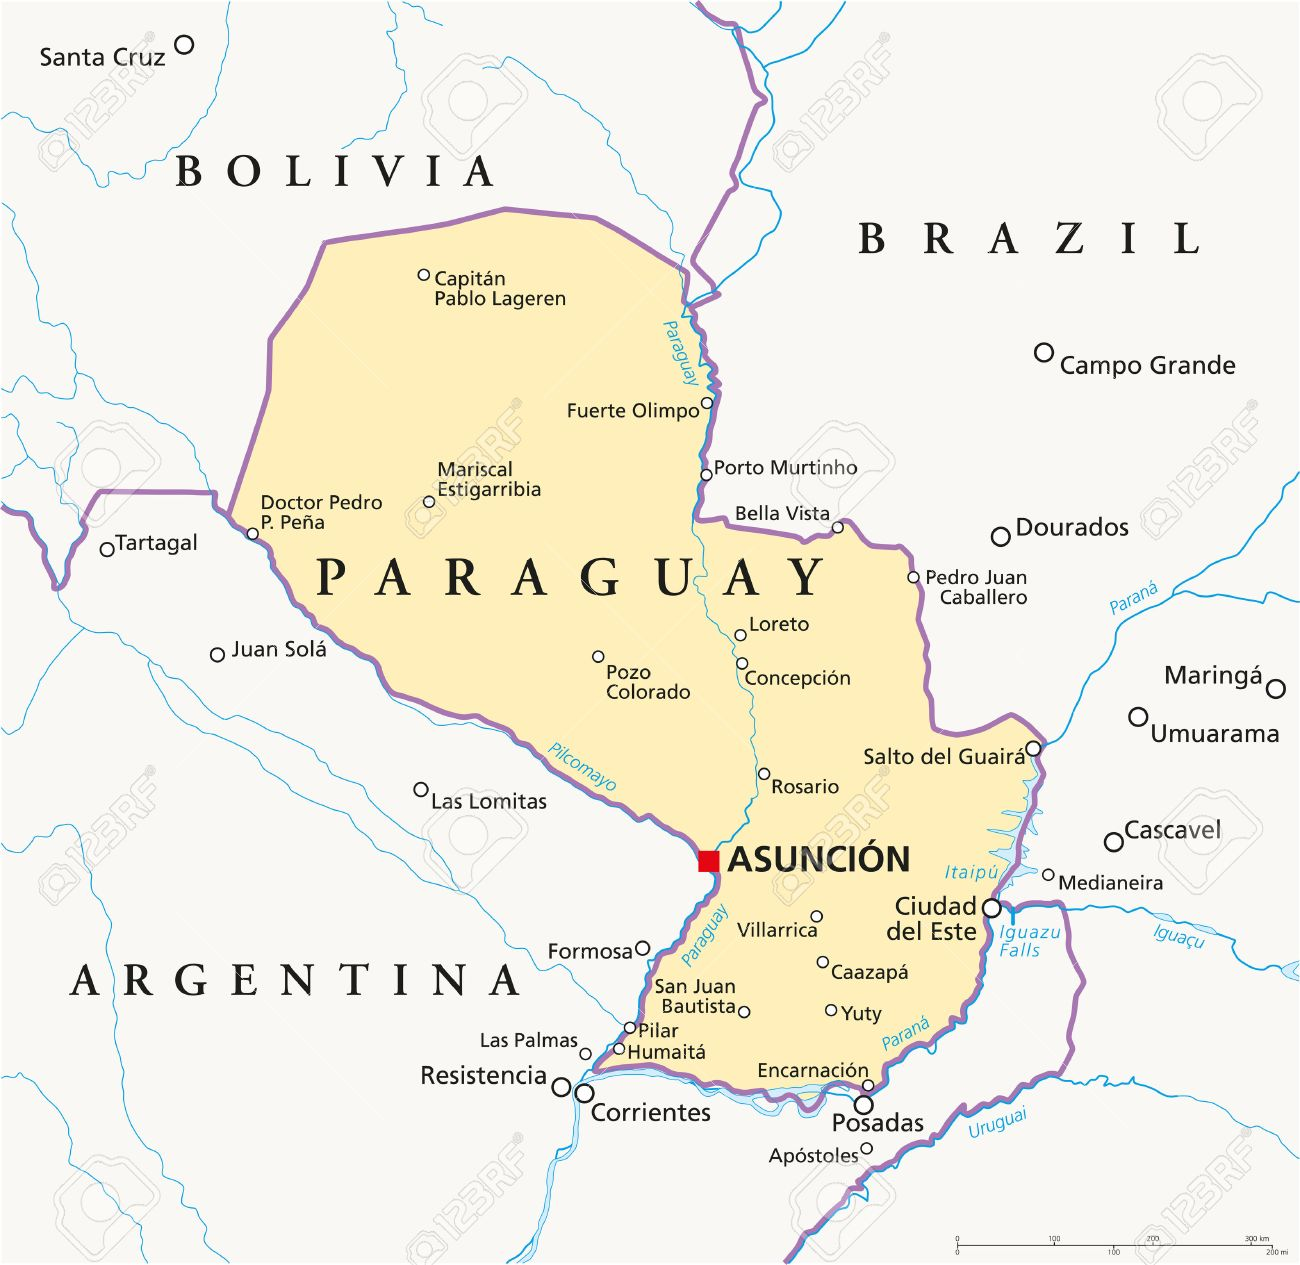 Paraguay Political Map With Capital Asuncion, National Borders ...